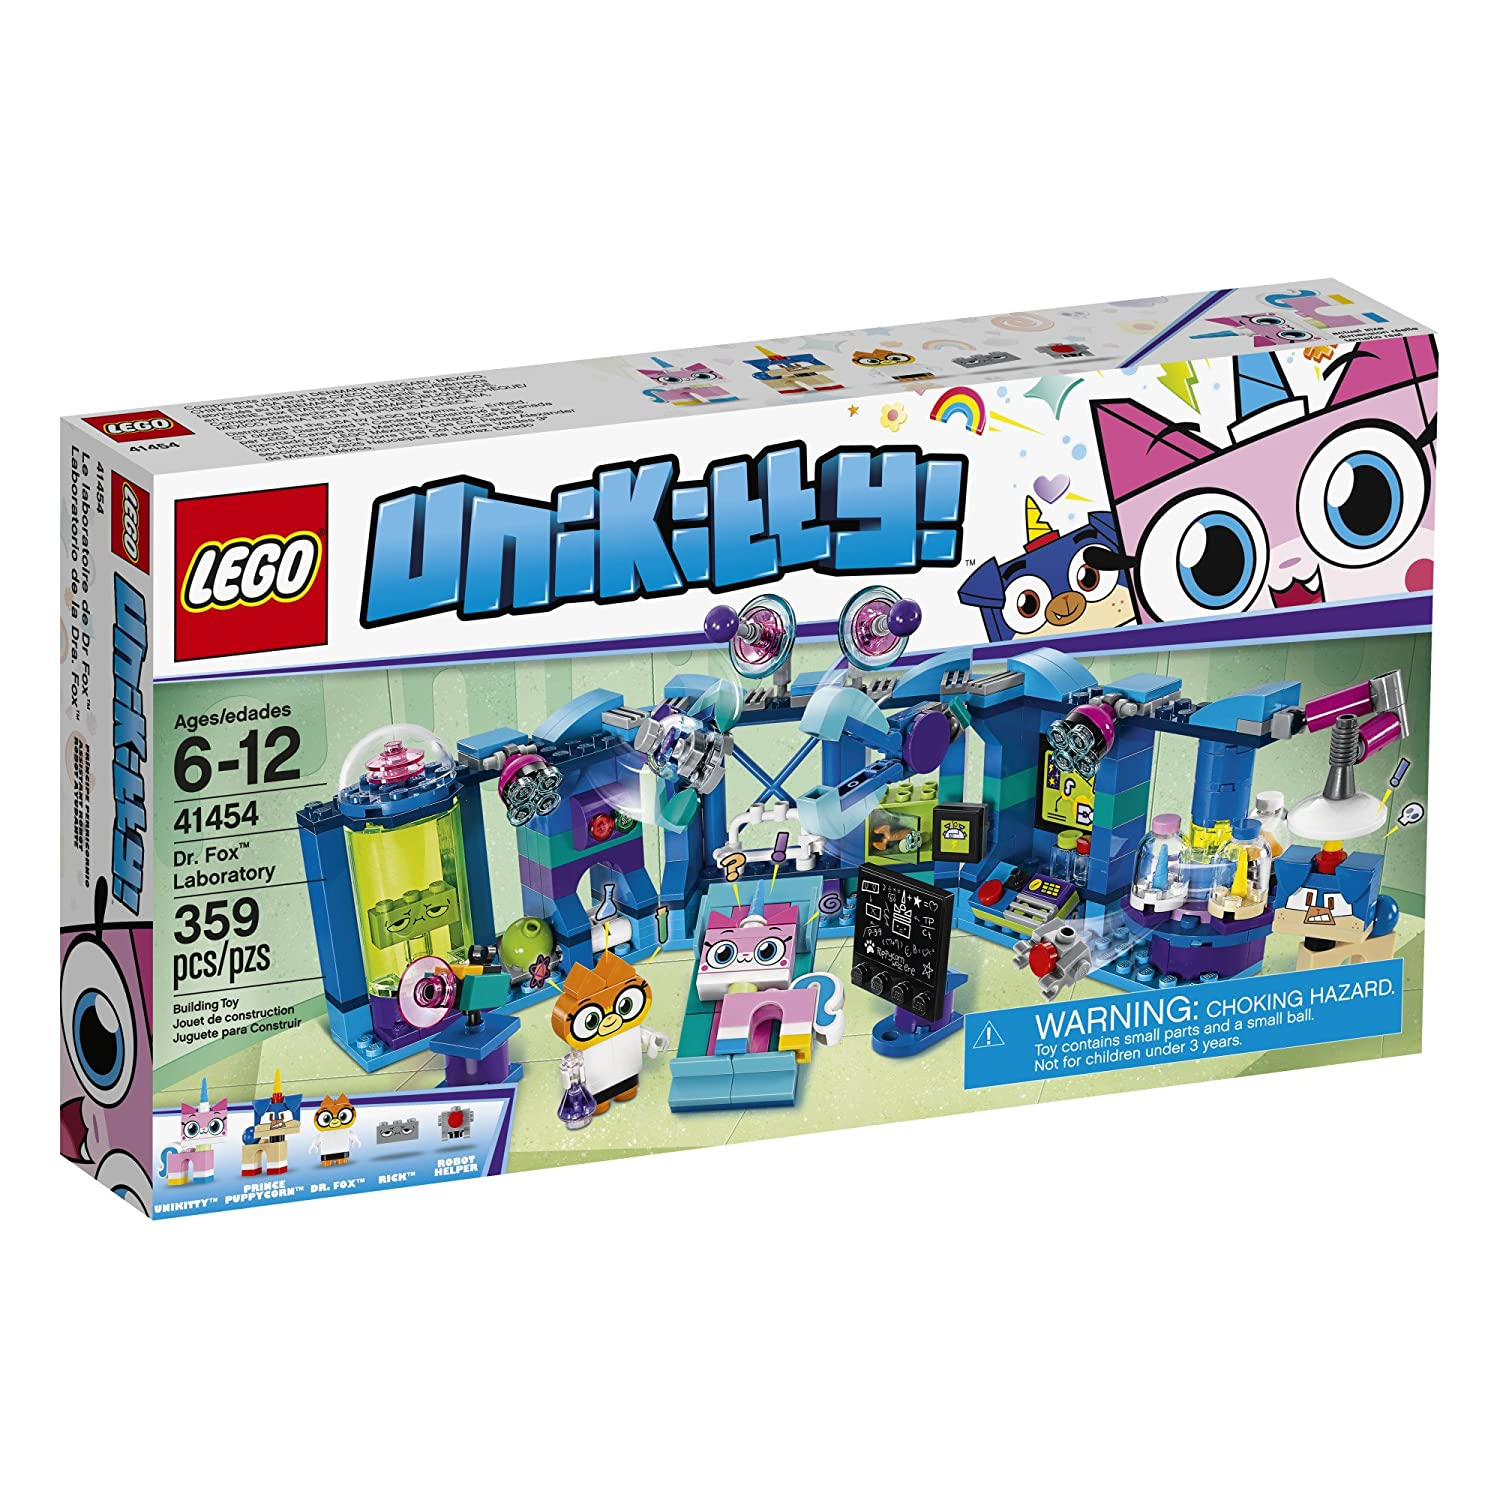 Top 7 Best LEGO Unikitty Sets Reviews in 2020 2